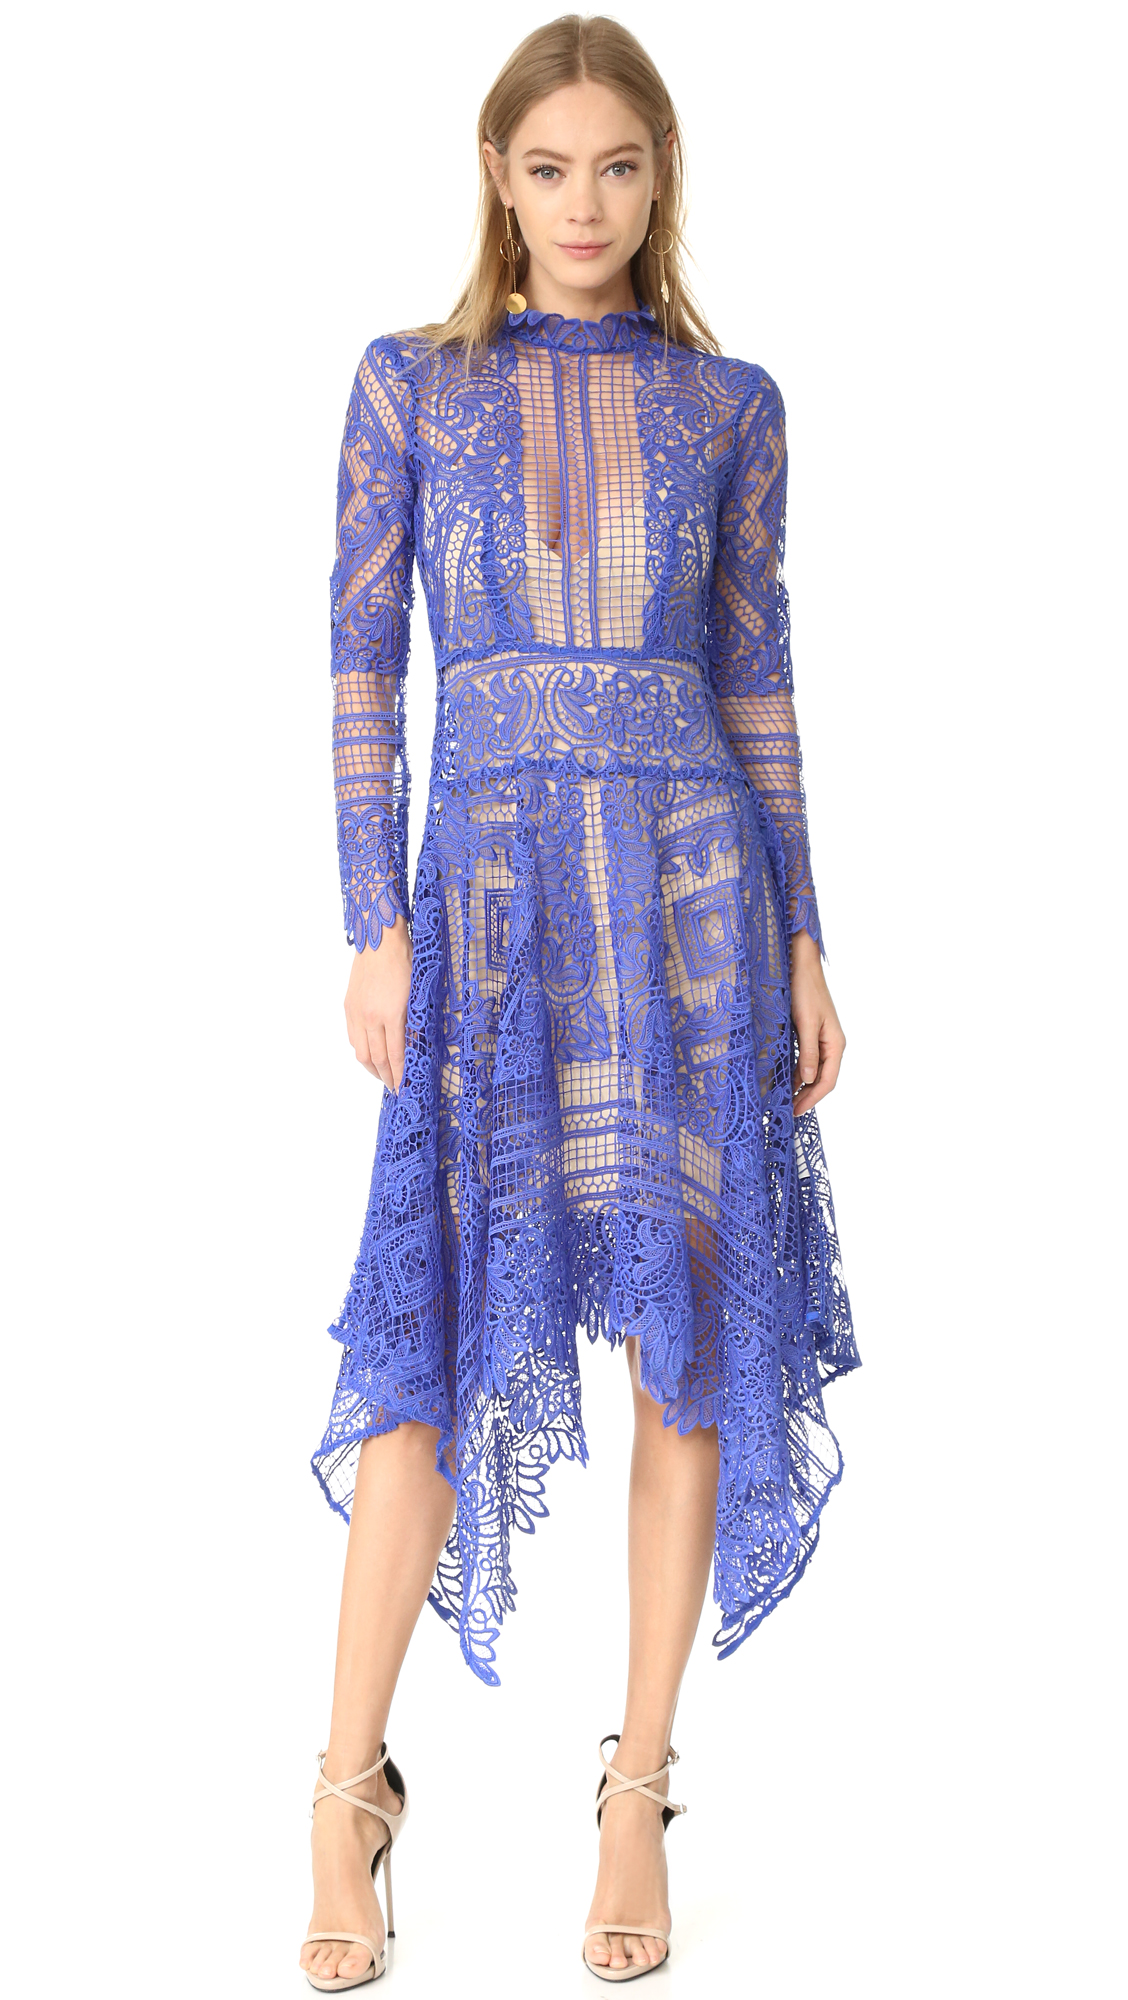 Description NOTE: Sizes listed are Australian. Please see Size & Fit tab. Intricate patterns accent this elegant lace THURLEY dress. The flared skirt and uneven hem create a dramatic, swingy shape. High neckline. Sheer yoke and long